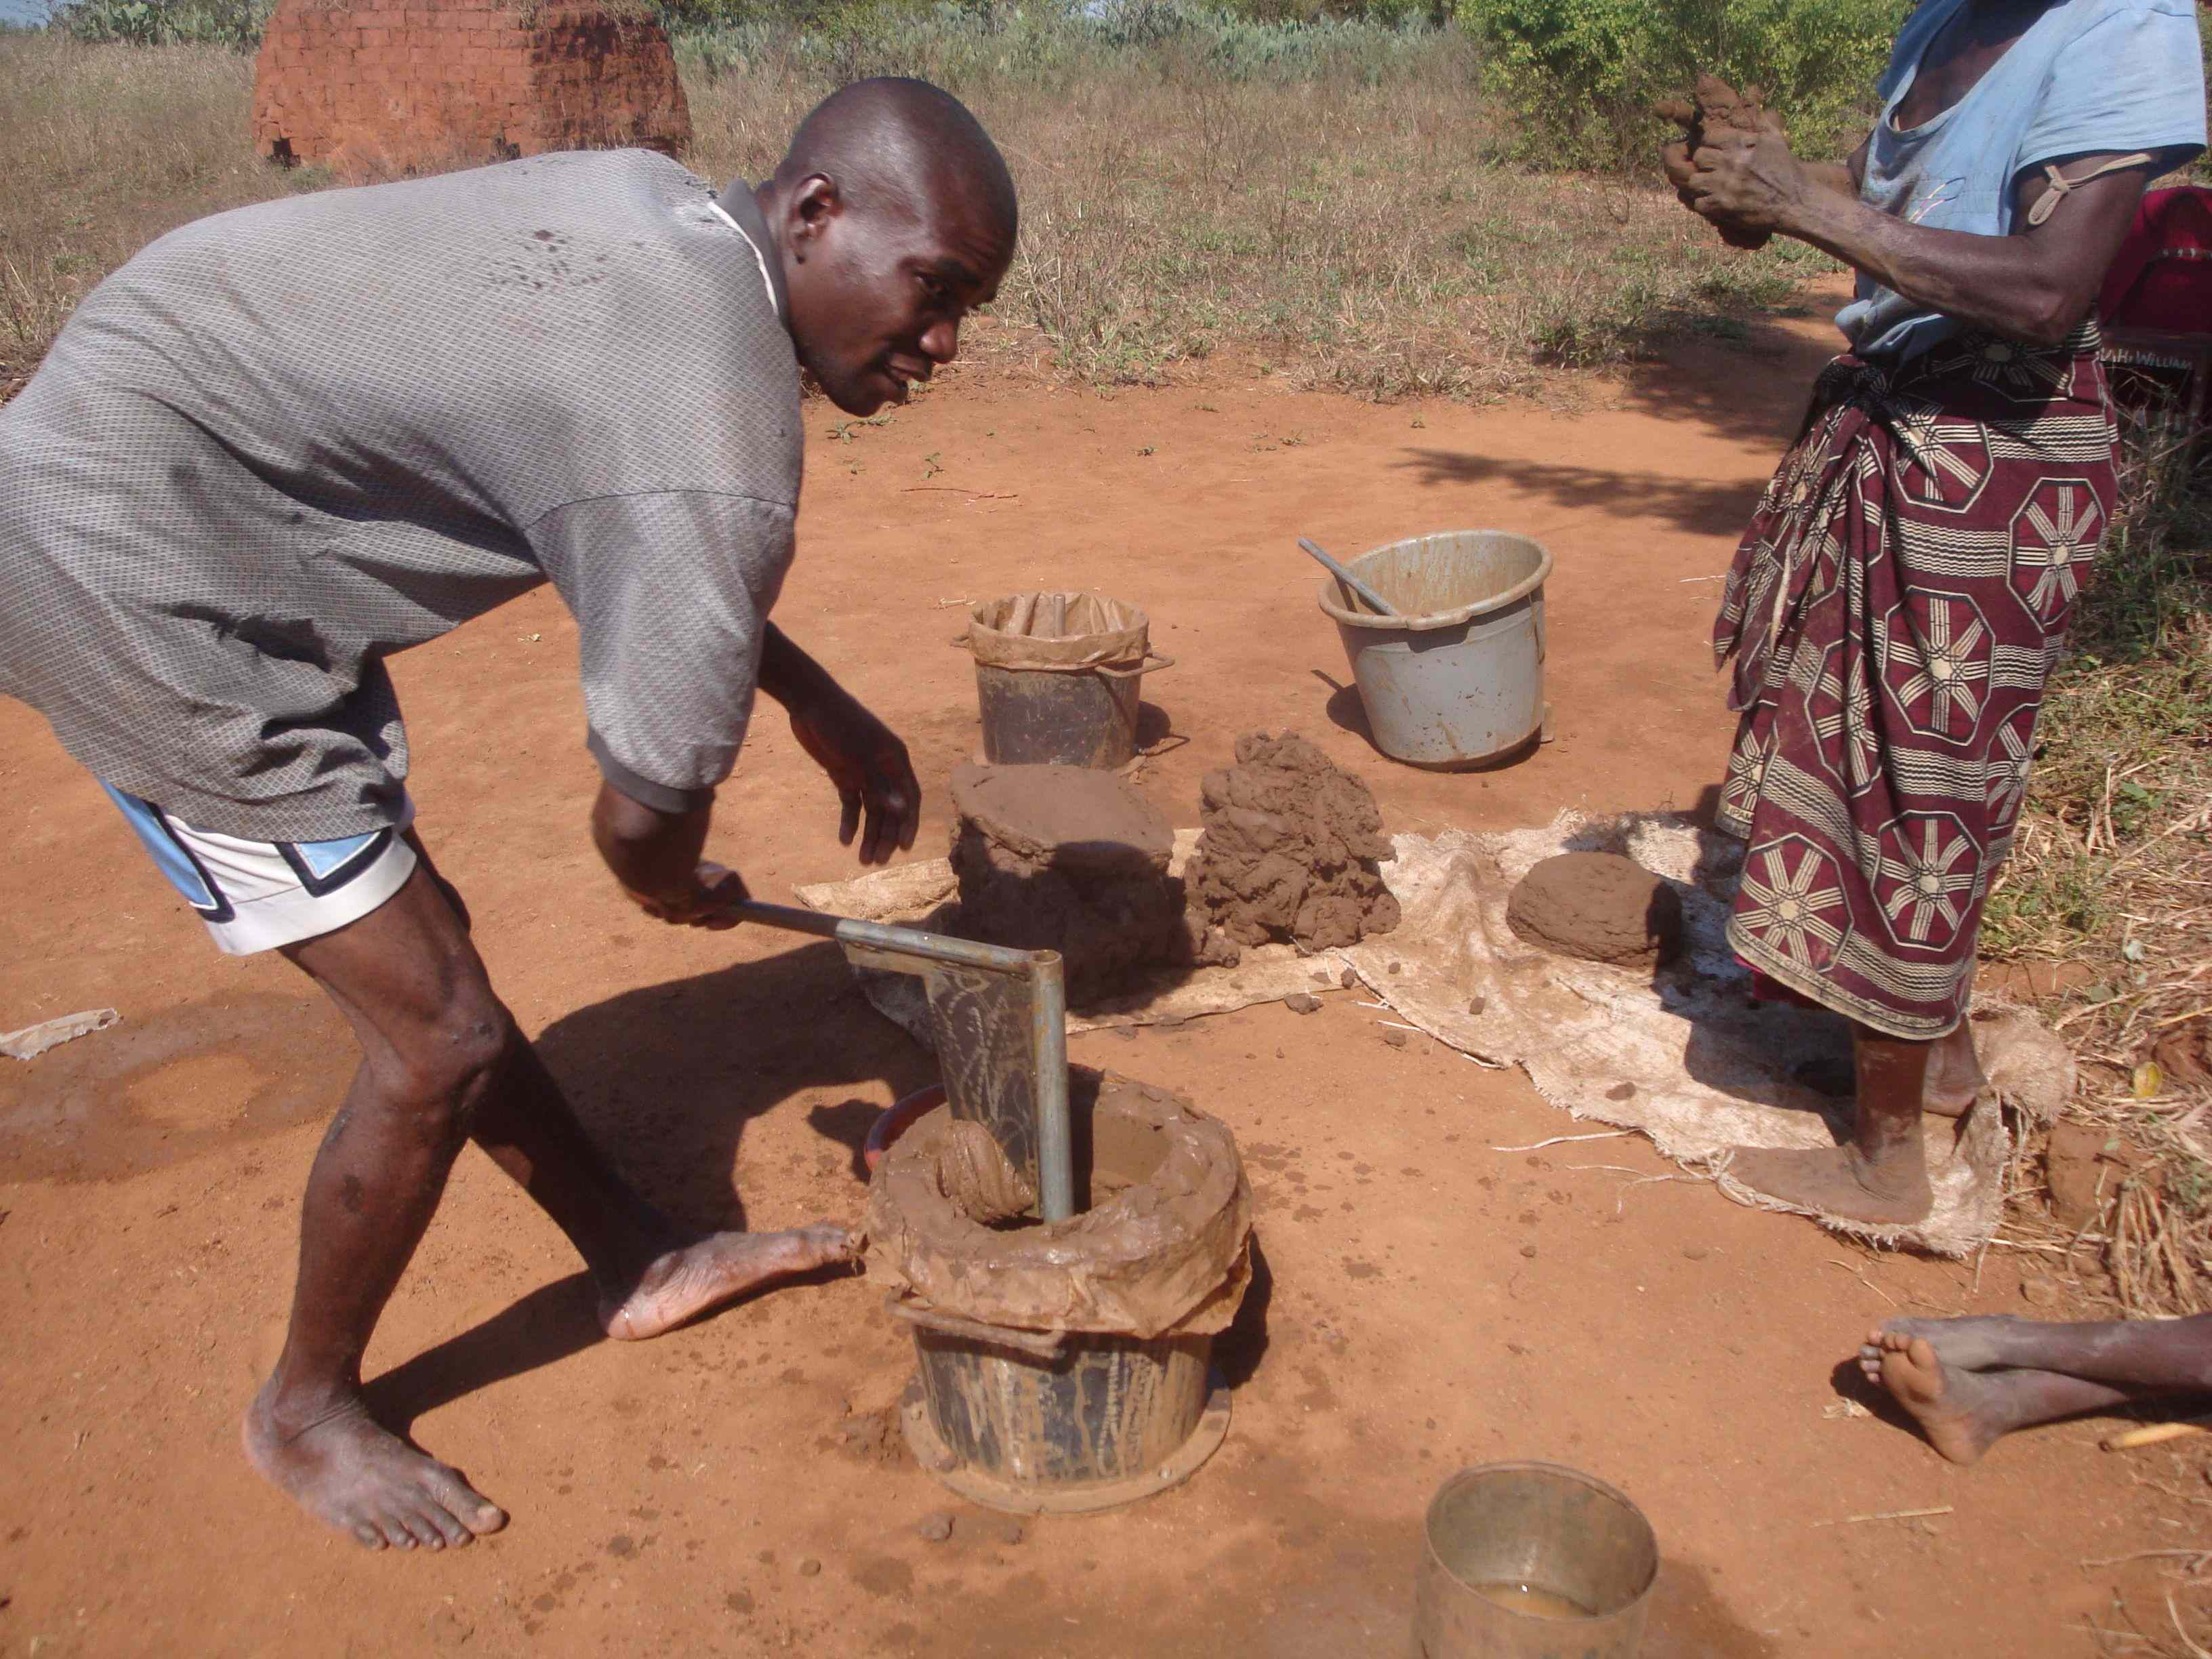 Using a simple mould, villagers can make about 10 fuel efficient stoves a day. They can then sell these for about $1 each.